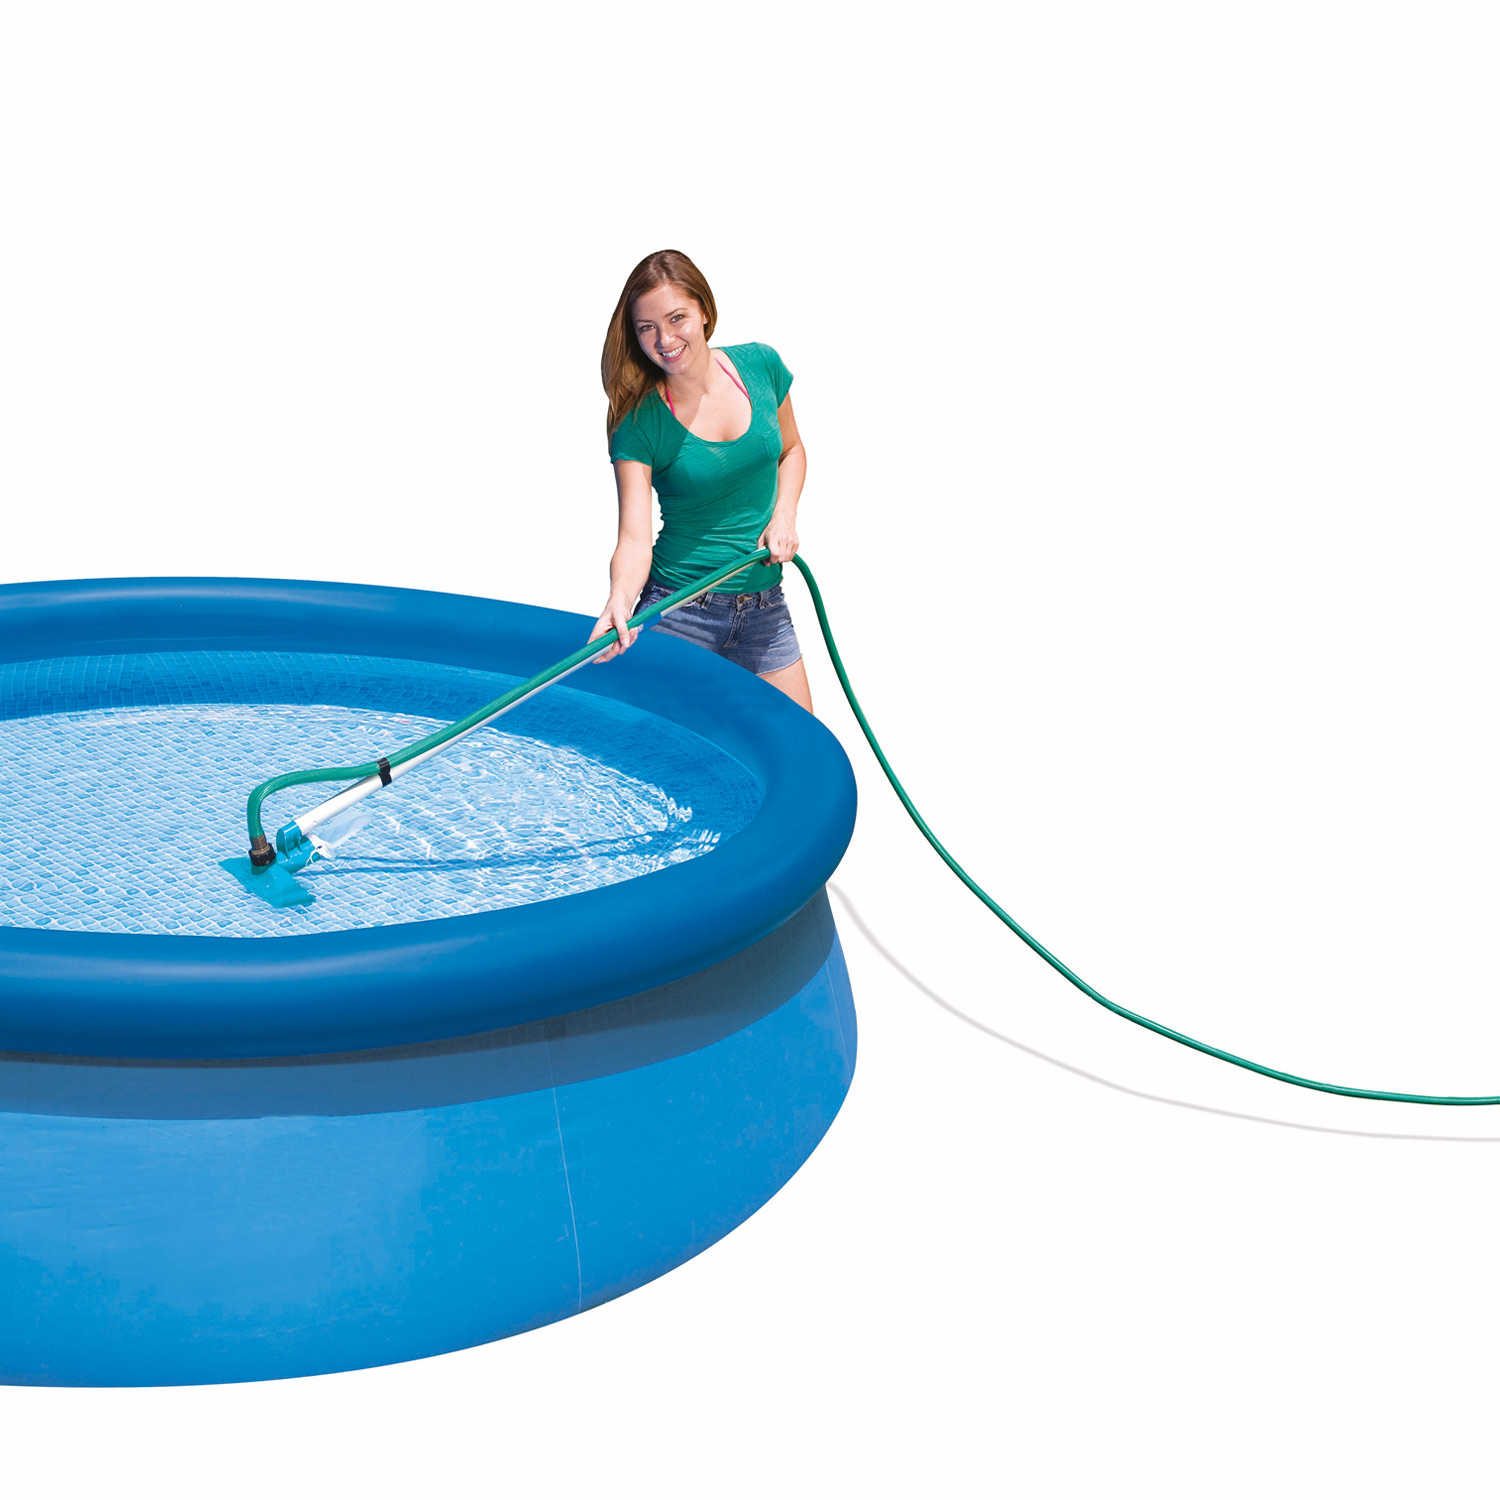 Pool Reinigungsset Video Intex Skimmer 28002 Pool Reinigungsset Bodensauger Kescher